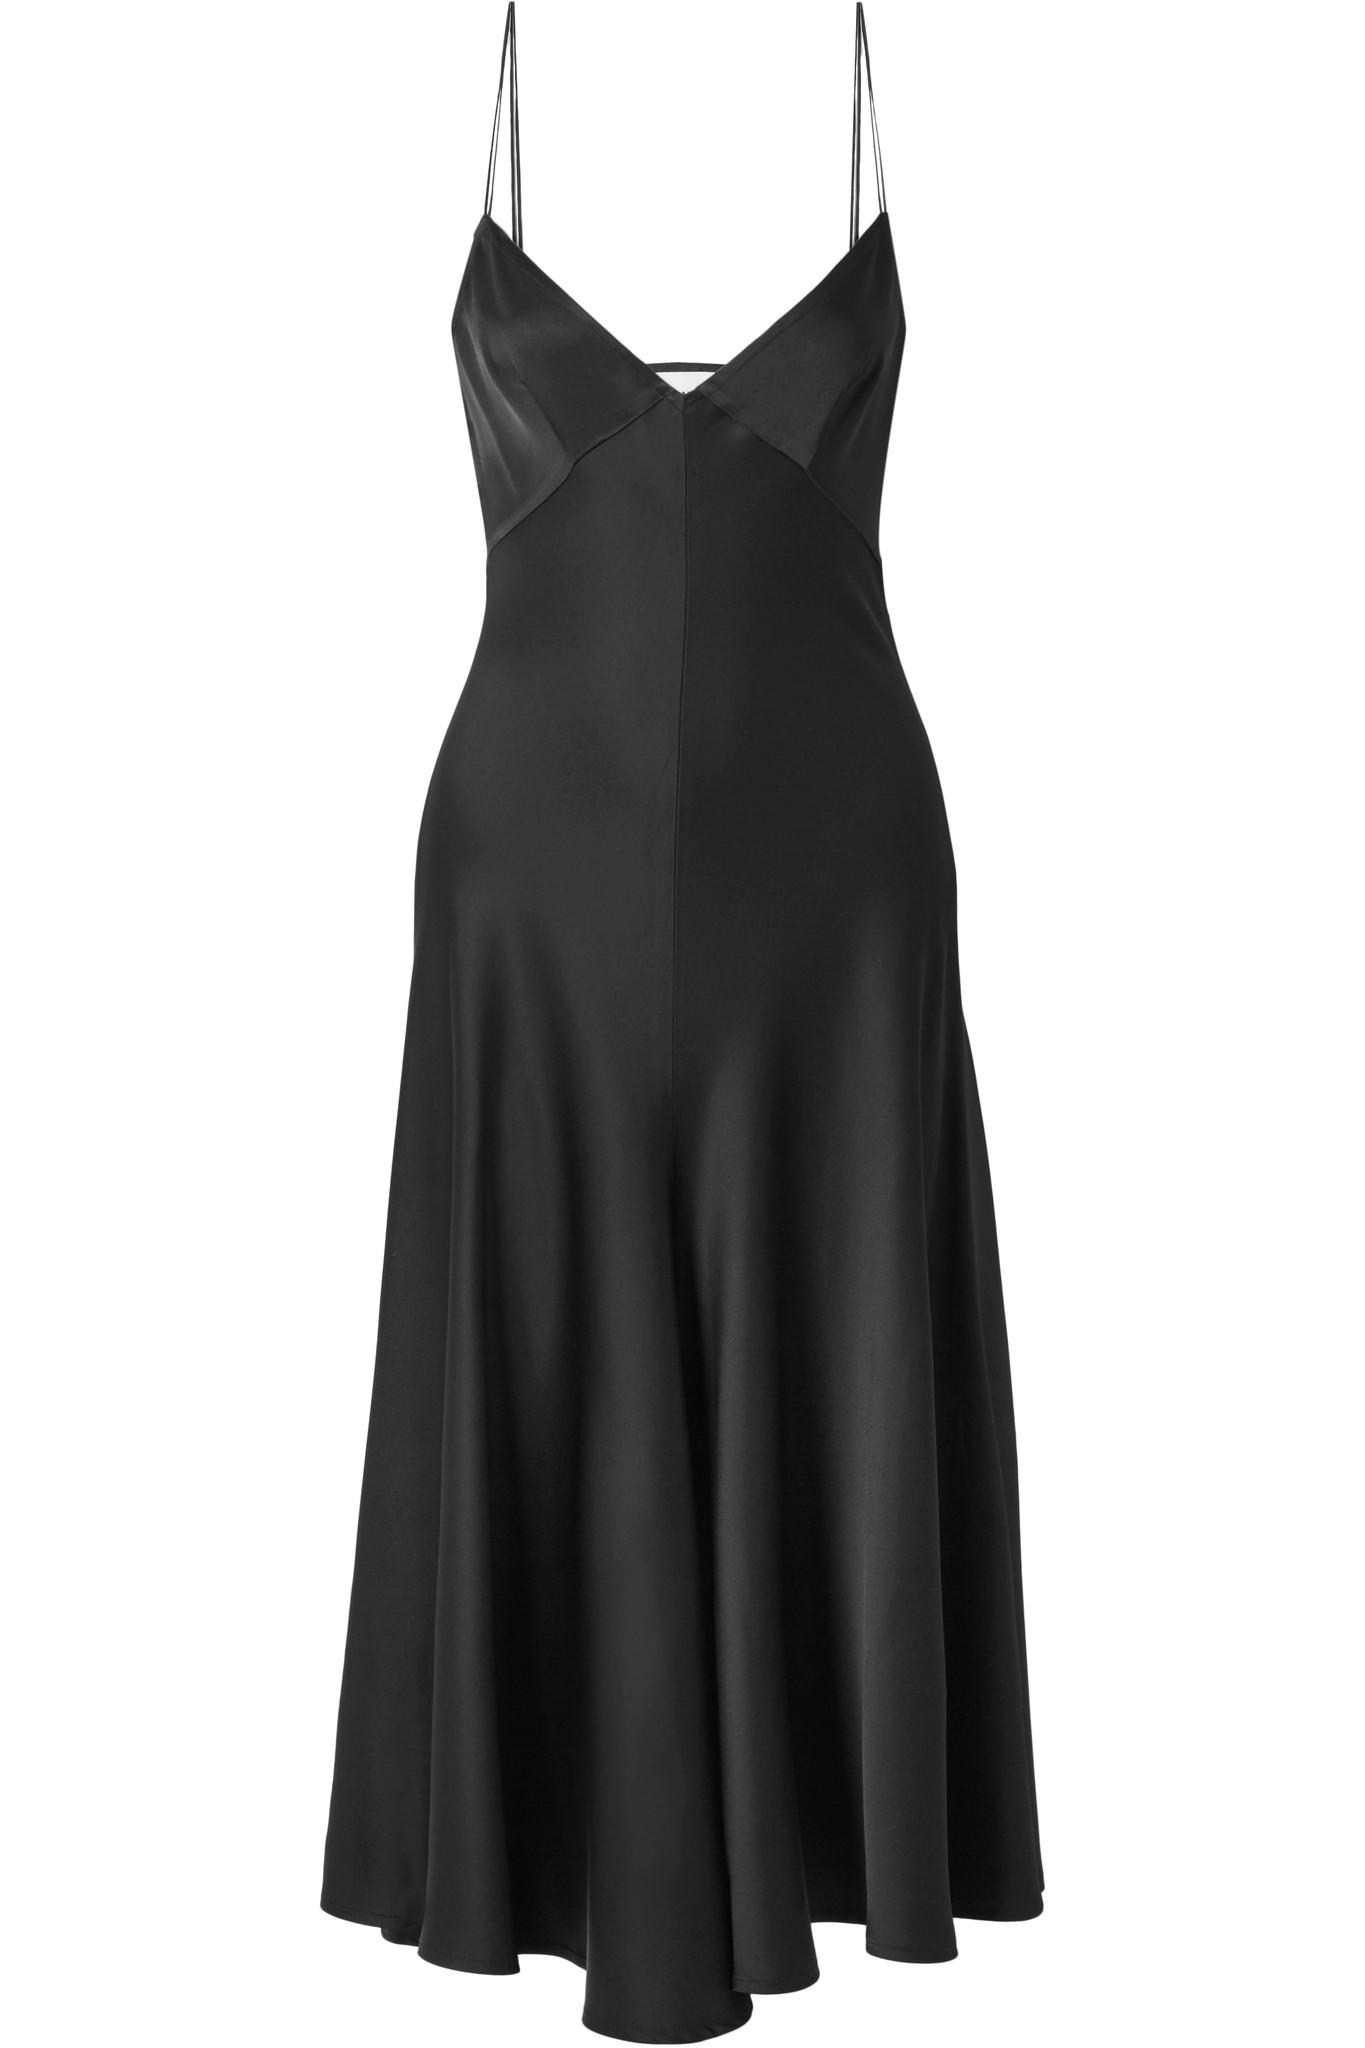 For Sale Cheap Price From China Carolina Satin-crepe Midi Dress - Black Khaite 2018 Cheap Online 100% Guaranteed Cheap Price Discount Find Great D9484H